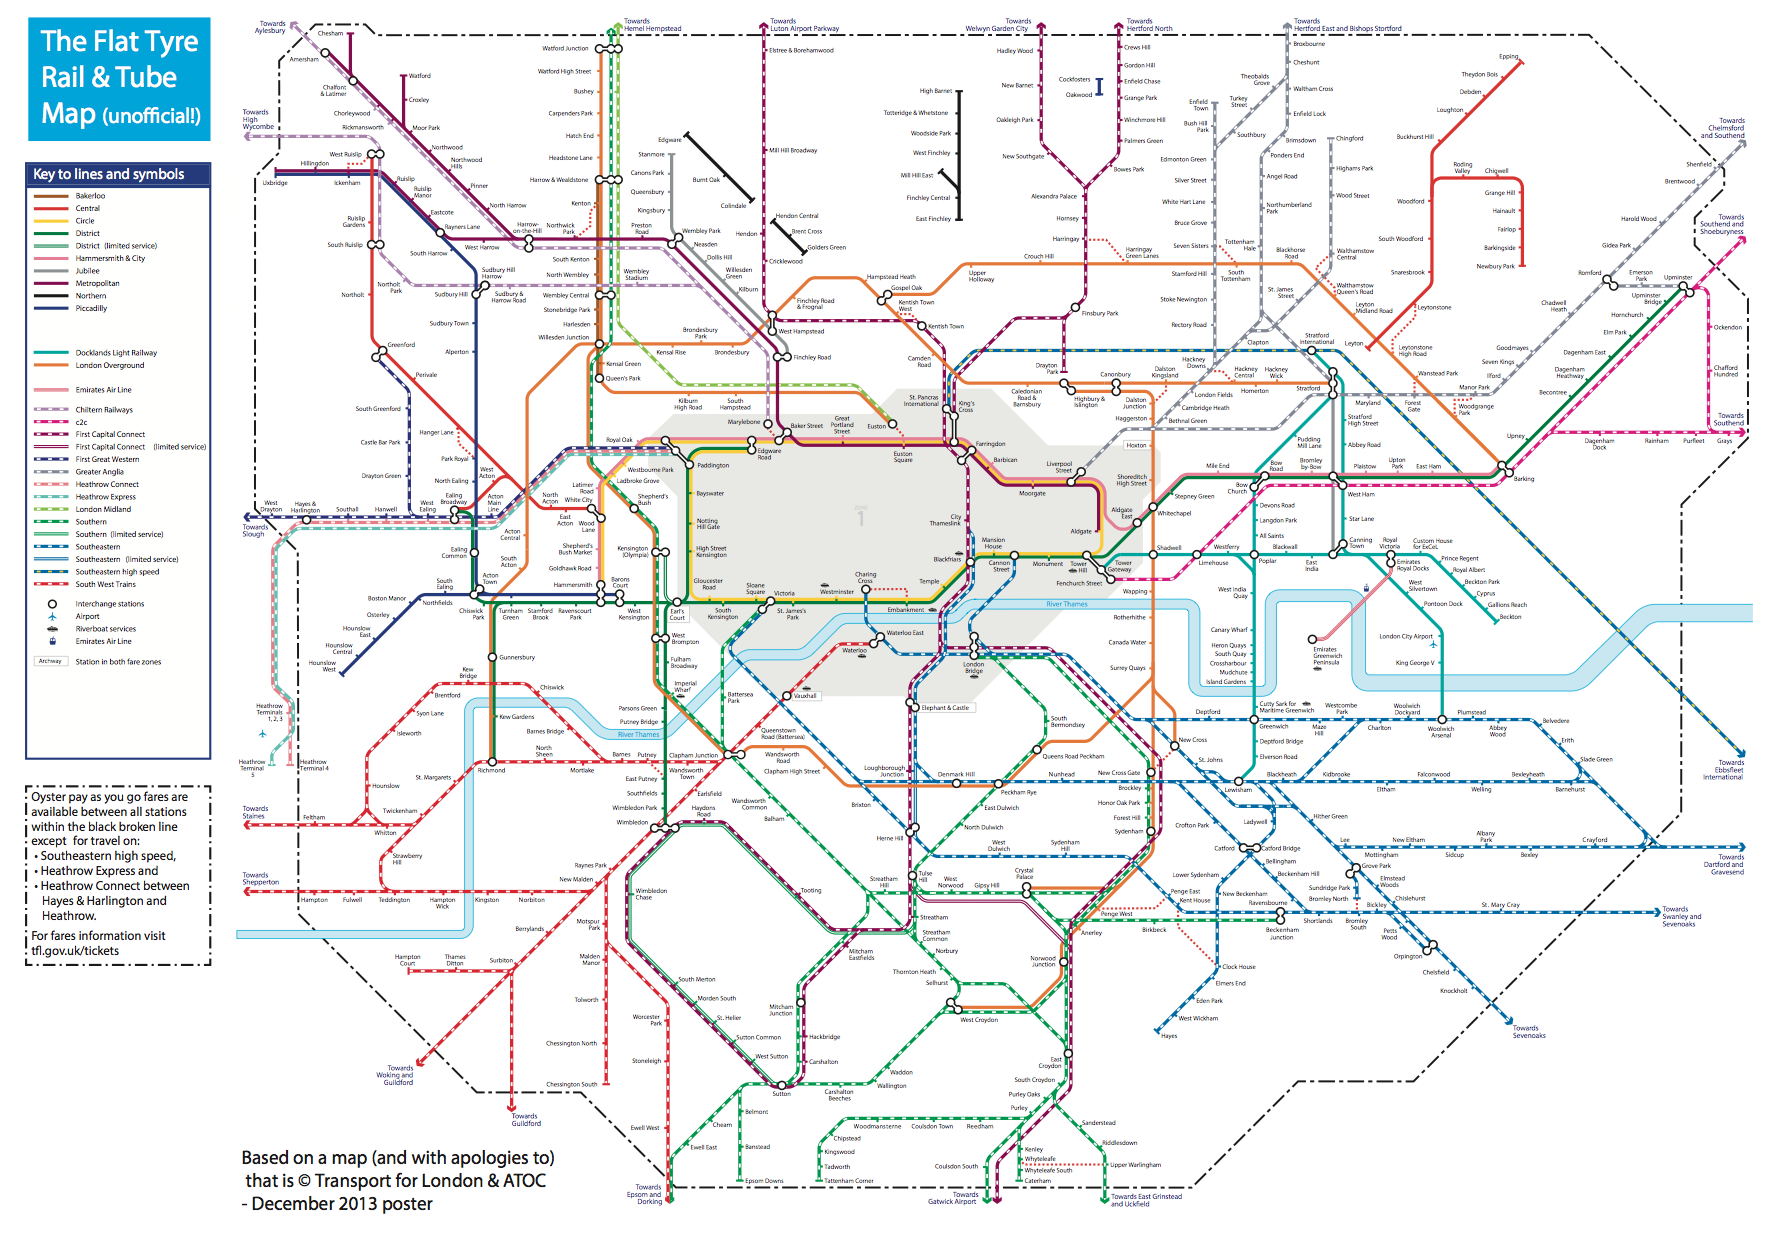 Transport For London Map.The Flat Tyre Tube Map Suprageography